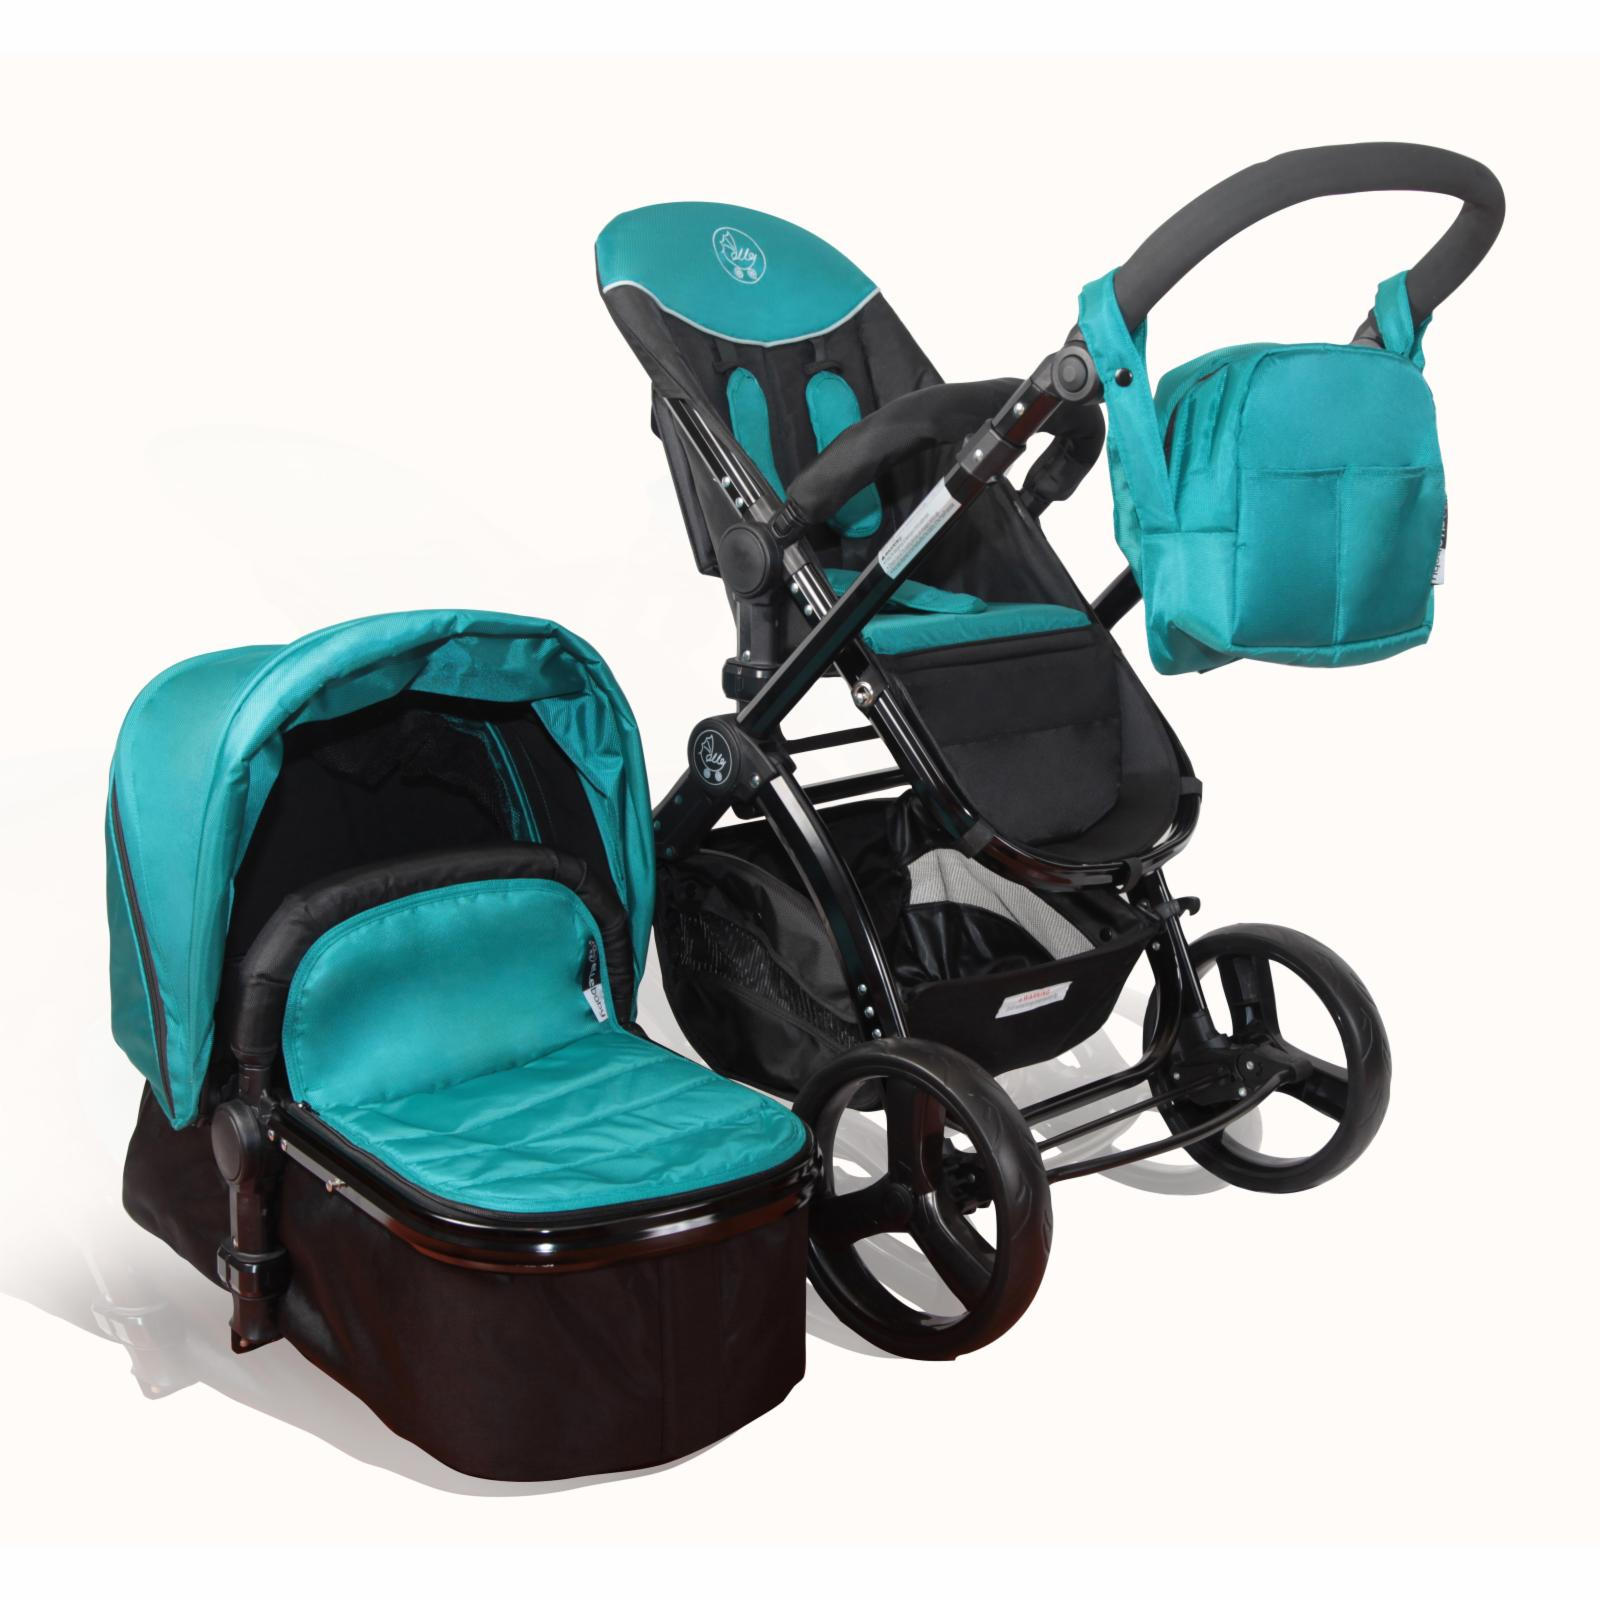 Elle Baby Strollers Deluxe Stroller System - Teal - DLX15TL